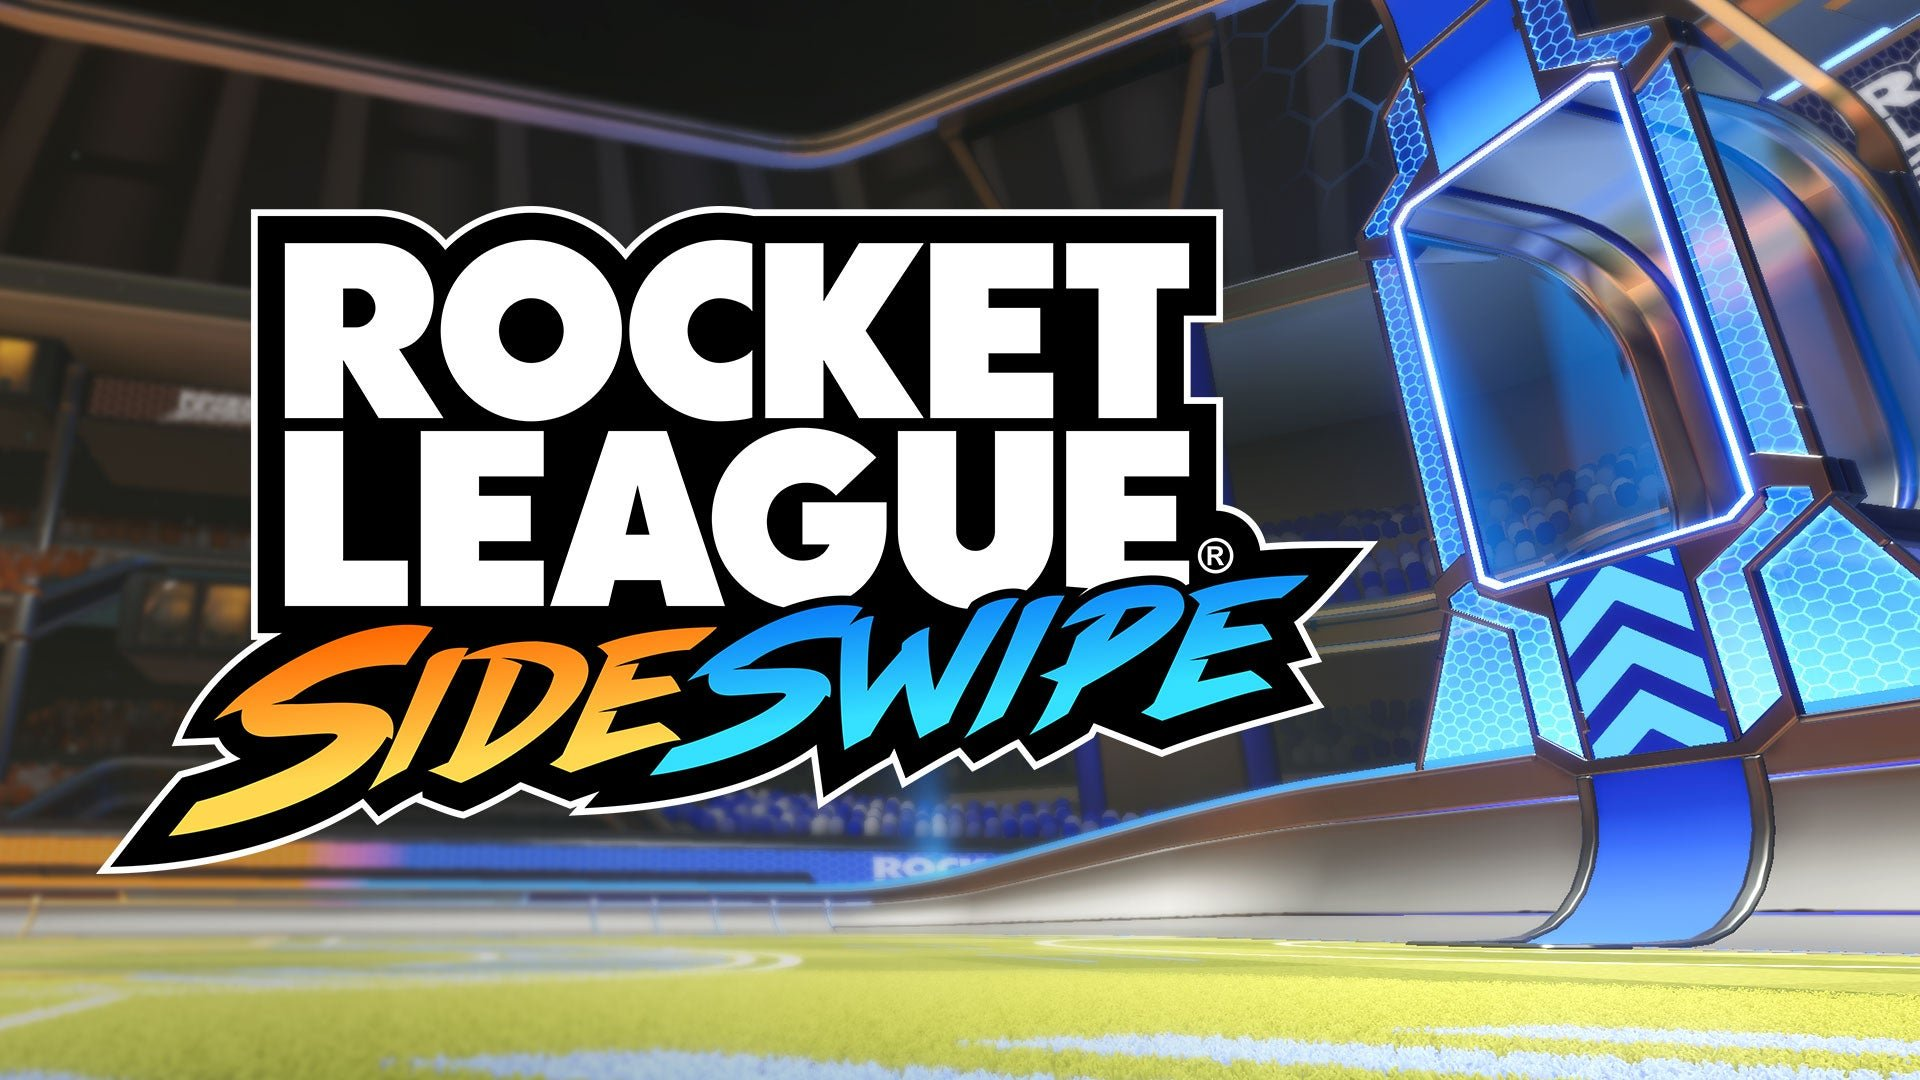 Rocket League Sideswipe: Release Date, Alpha/Beta, Price and More